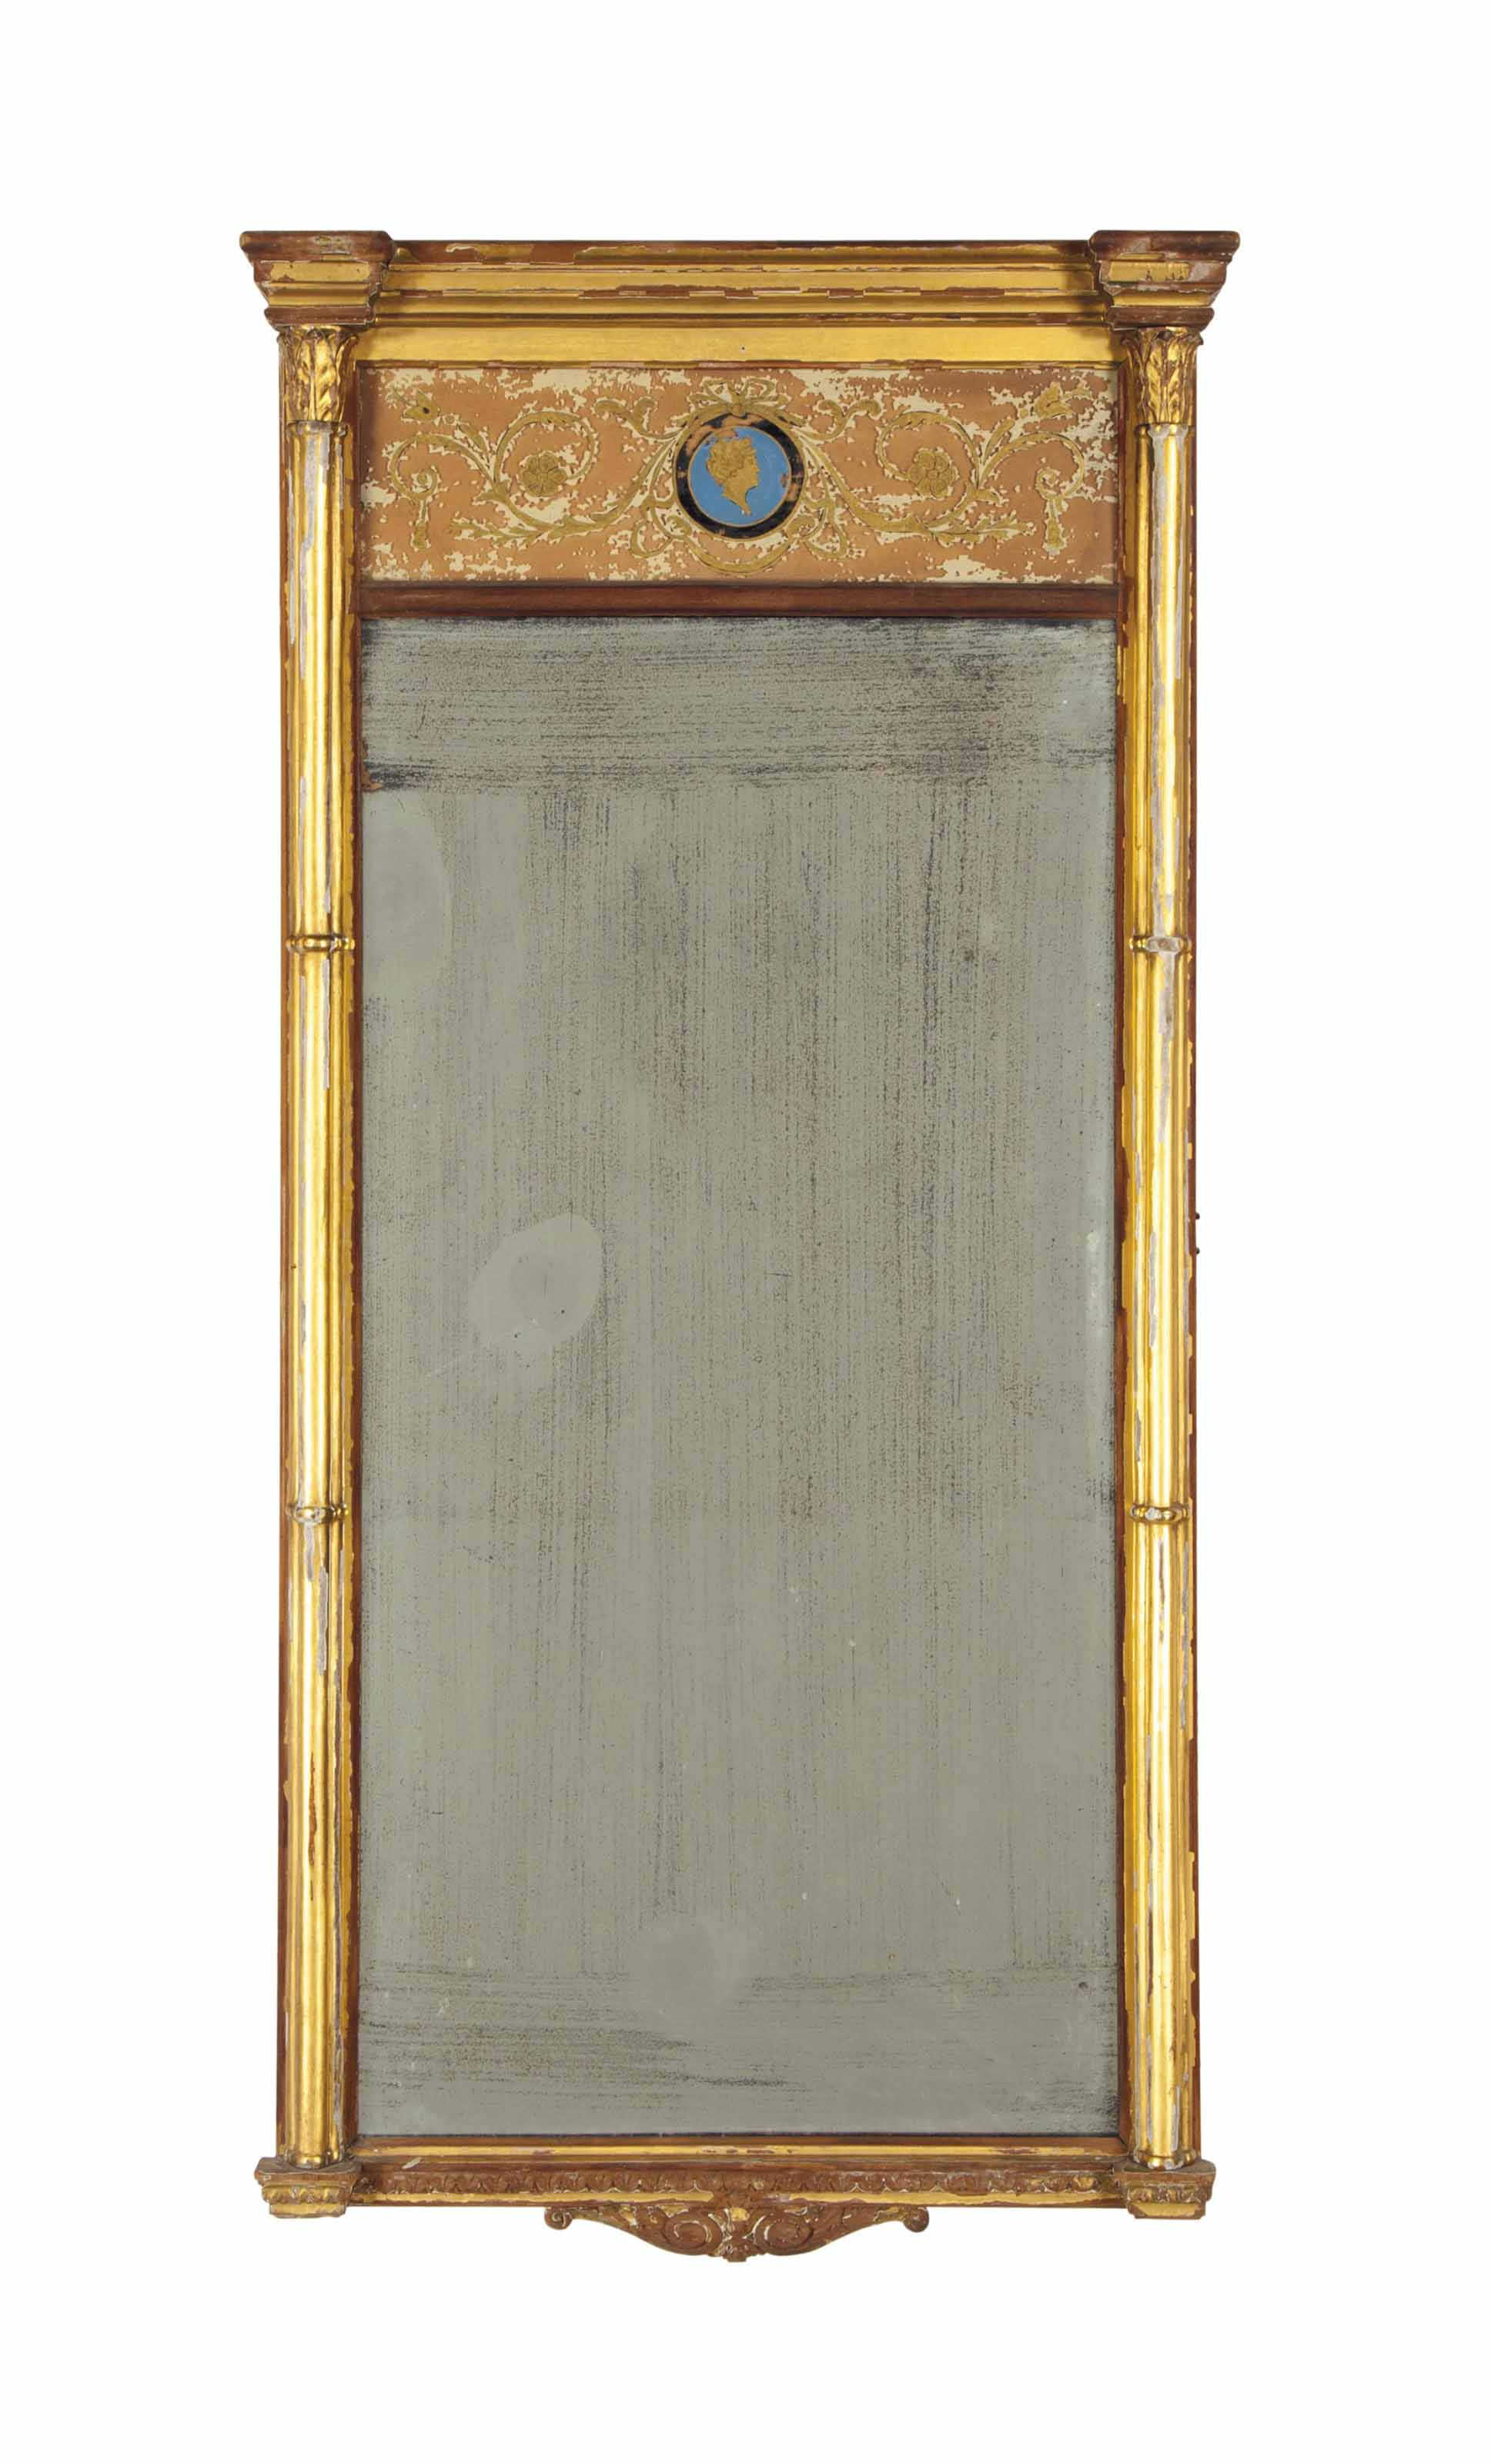 AN AMERICAN GILTWOOD AND EGLOMISE LOOKING GLASS,